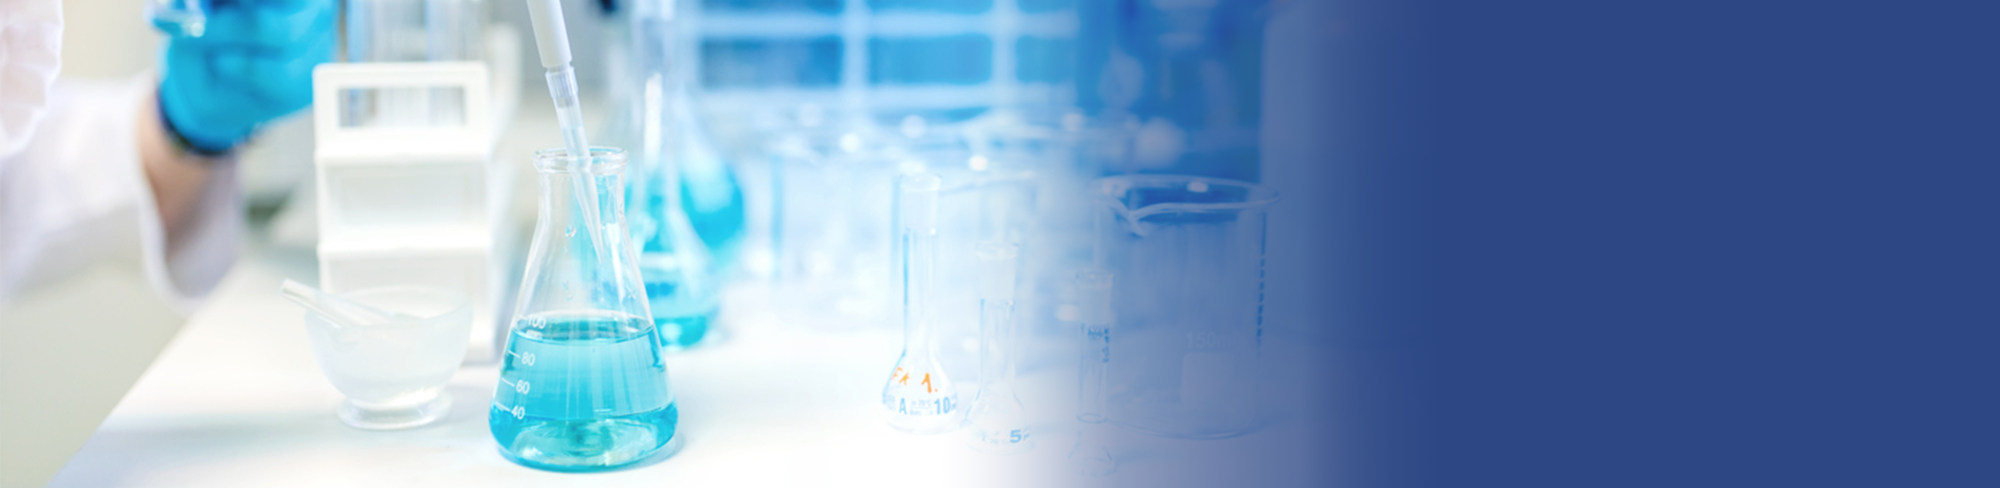 Speciality Chemicals Header.png